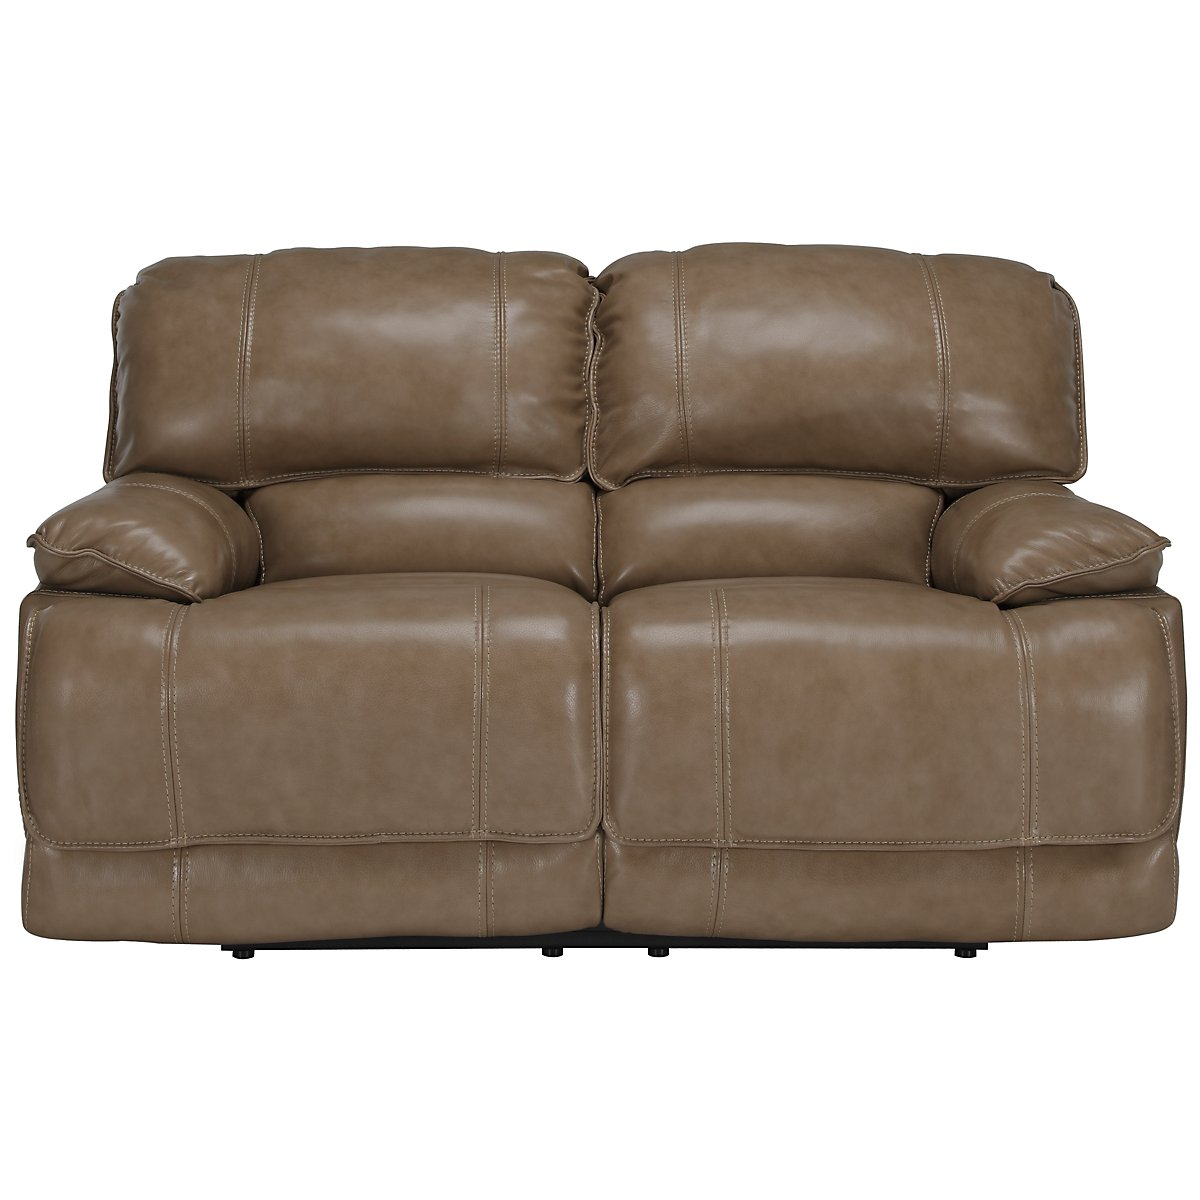 Benson Dark Taupe Leather & Vinyl Power Reclining Loveseat